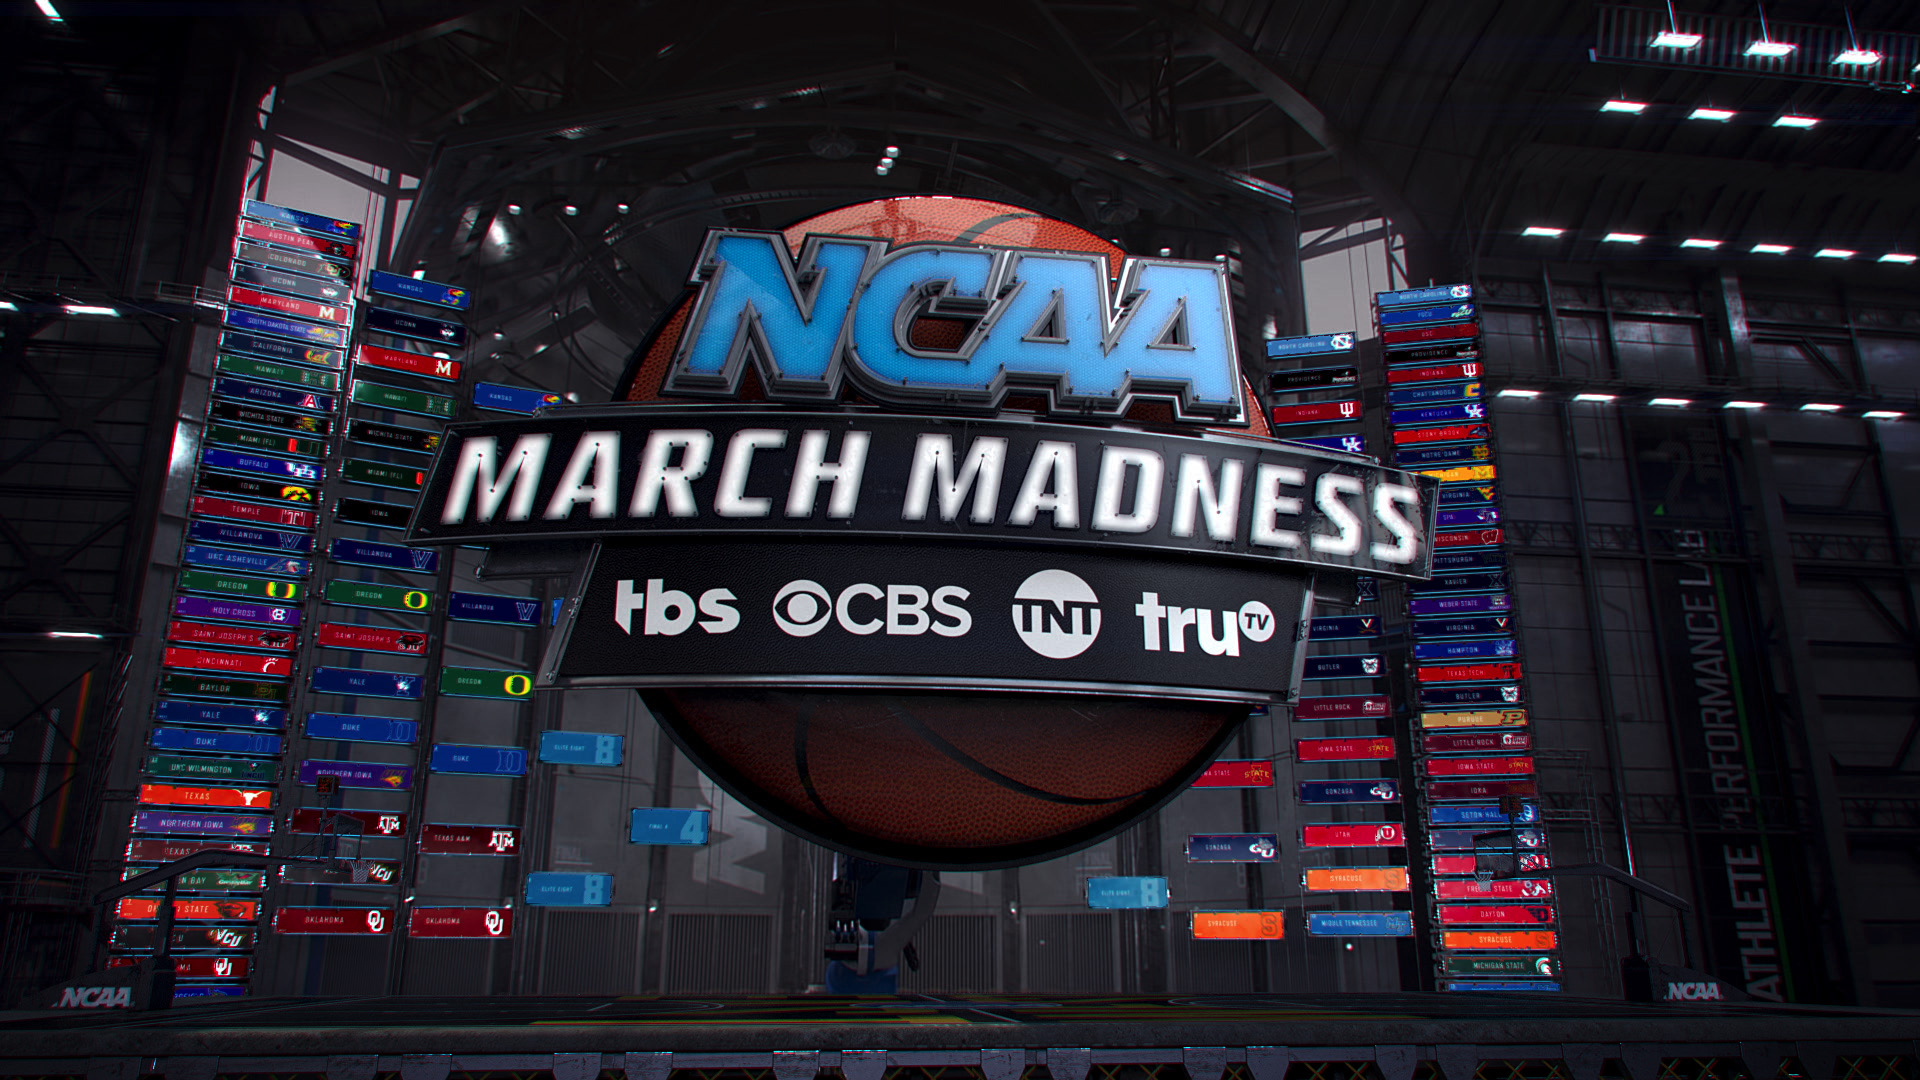 Turner Sports Cbs Sports To Preview March Madness In: King And Country